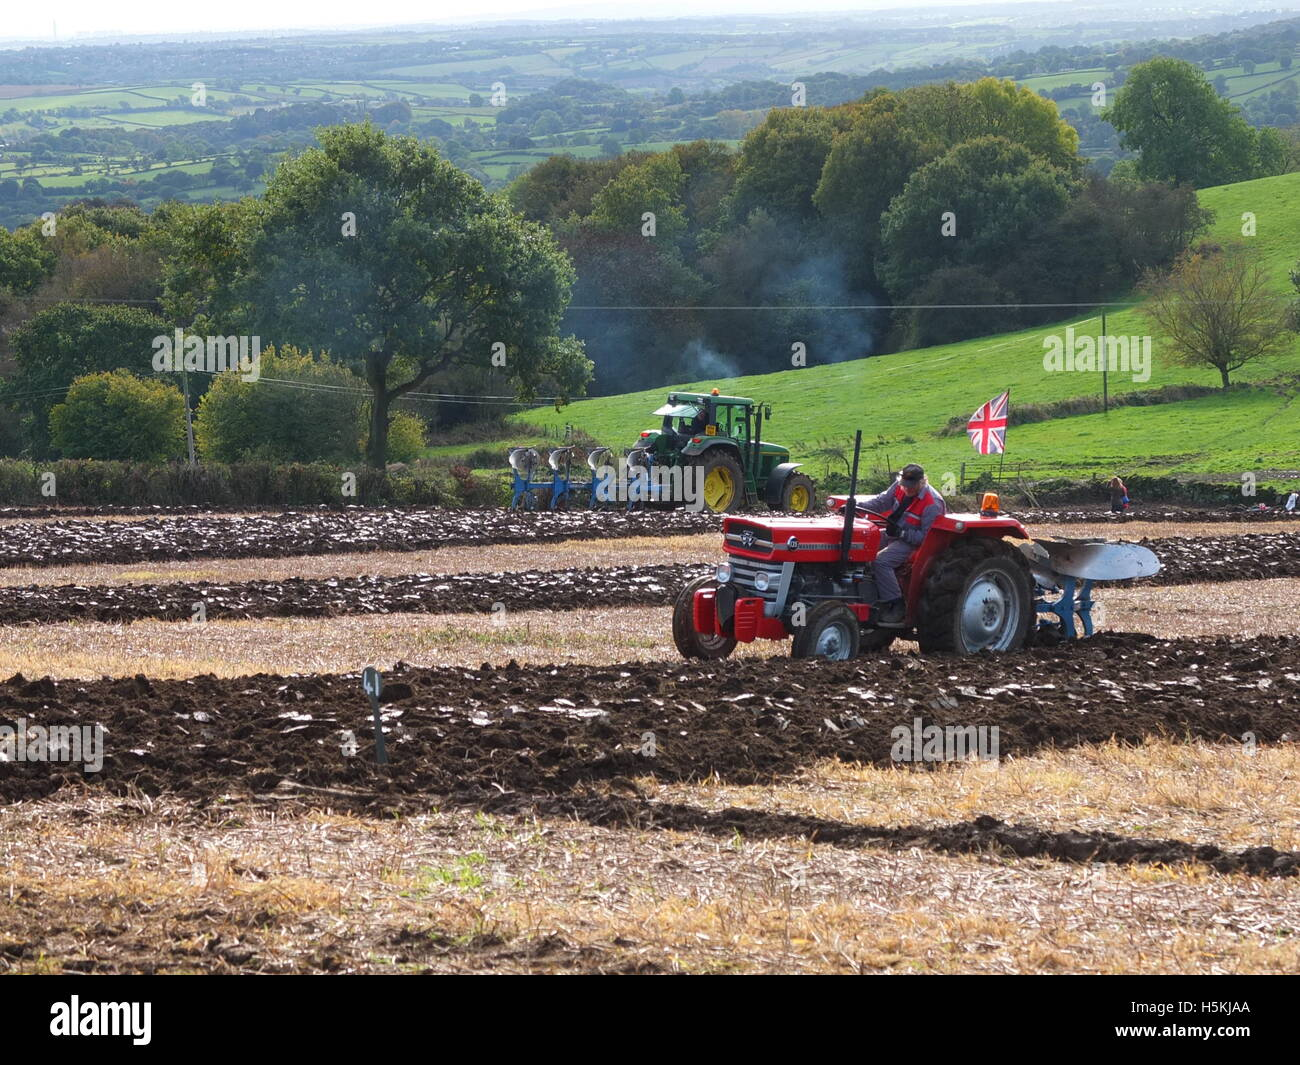 A farmer flying the Union Jack flag from his tractor competing in the Ashover Ploughing Match held at Highoredish Stock Photo